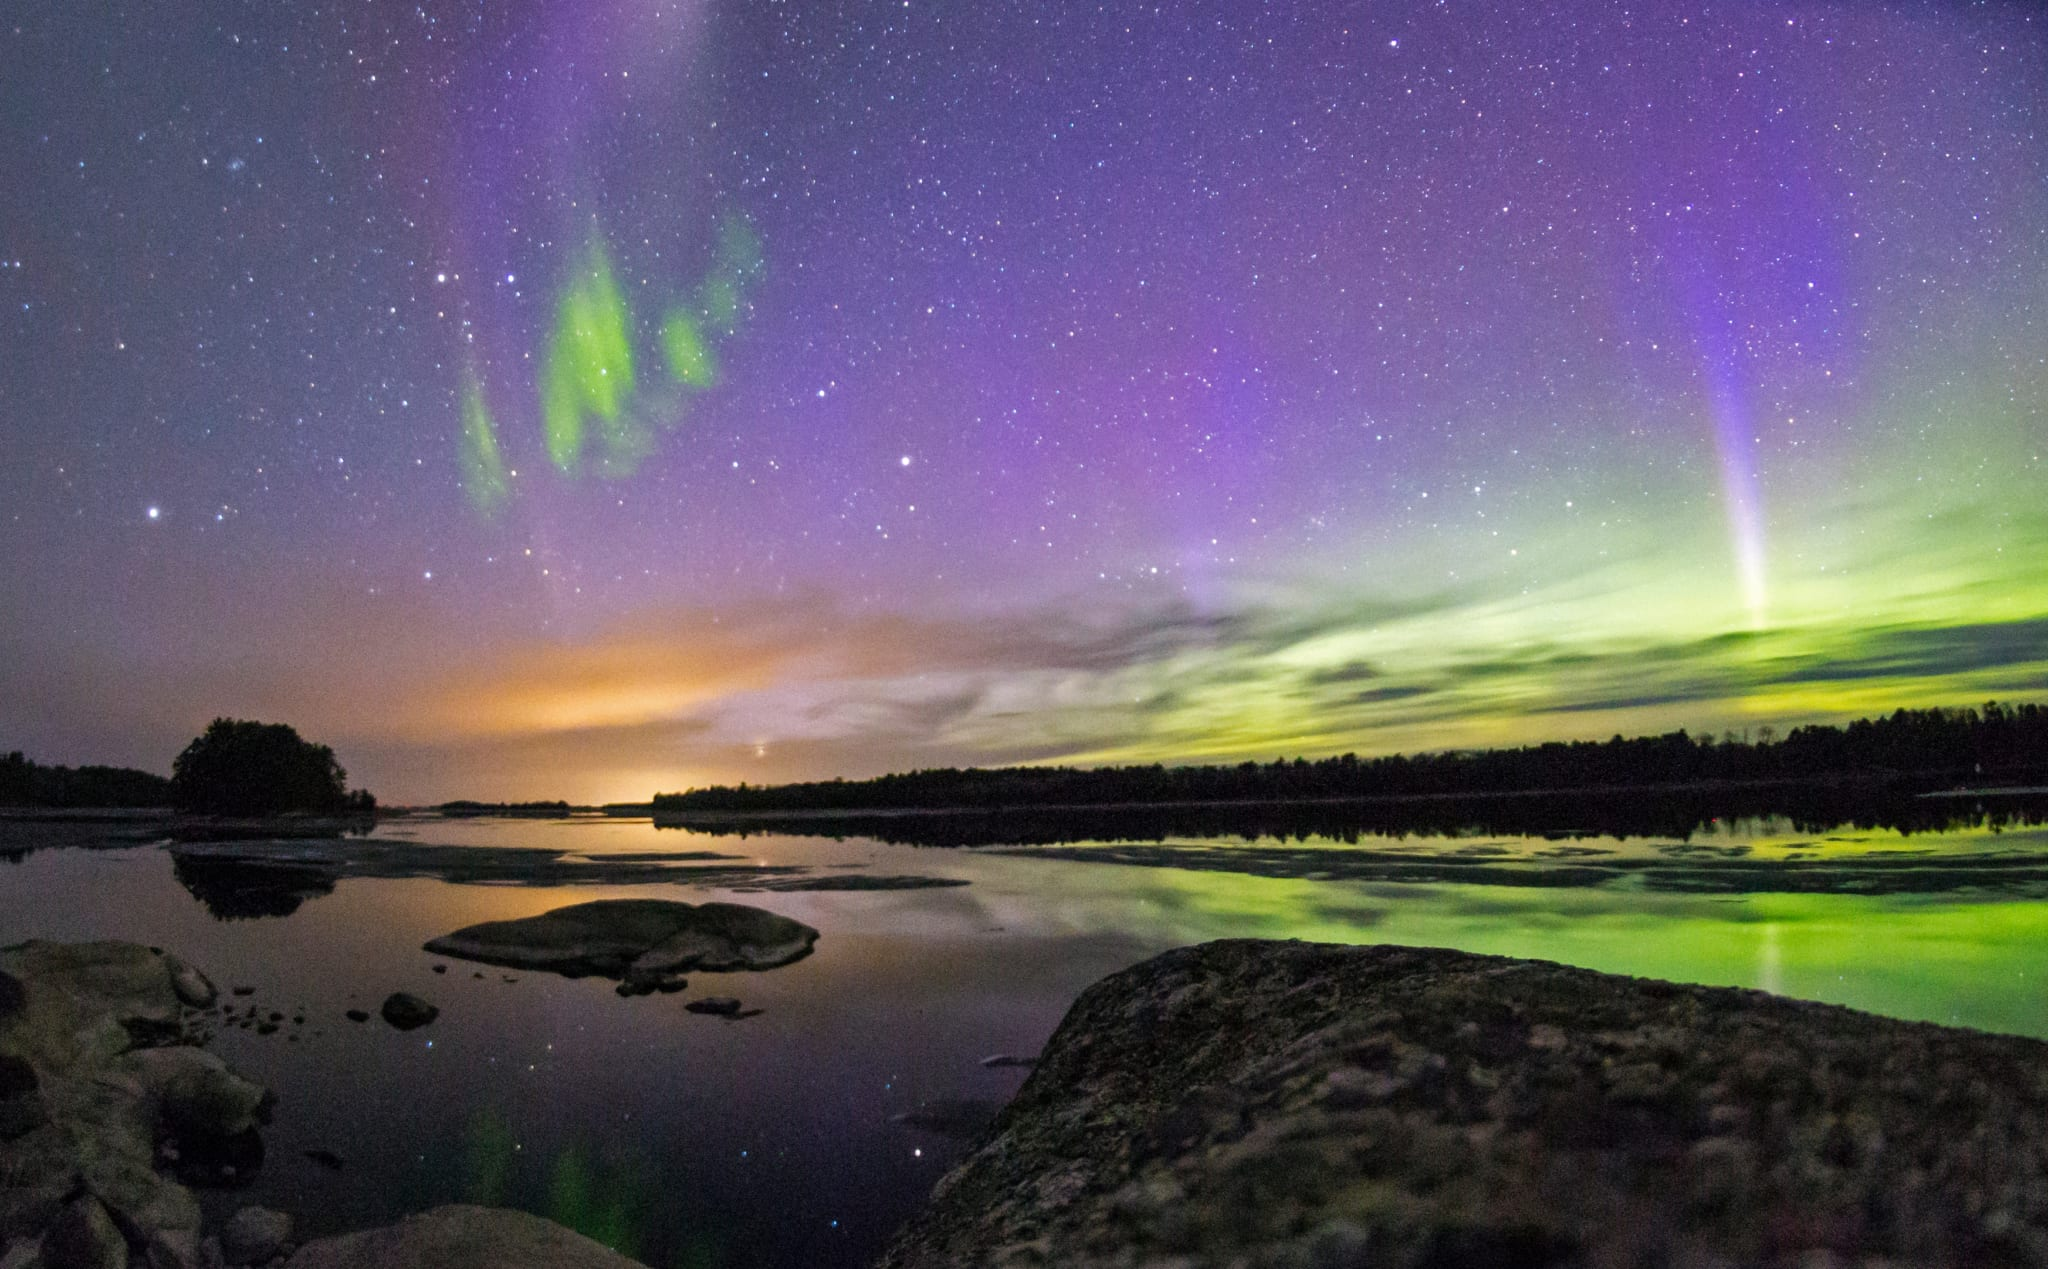 Northern lights over calm lake.